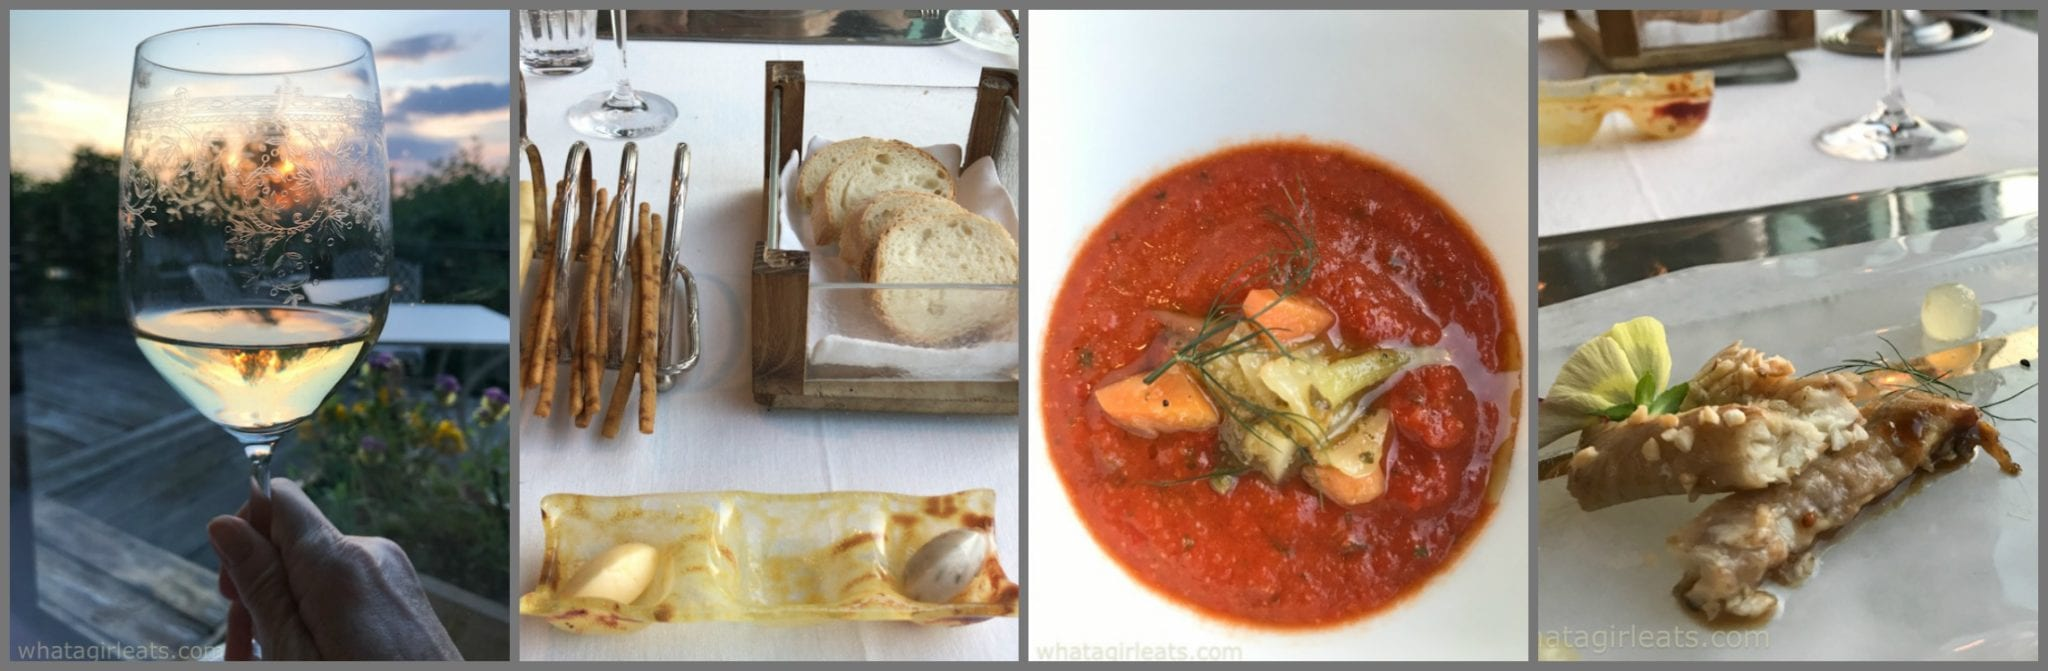 collage of wine bread, gazpacho and eel from antica corte pallavicina;A Slow-Food Dining Experience in Emilia-Romagna